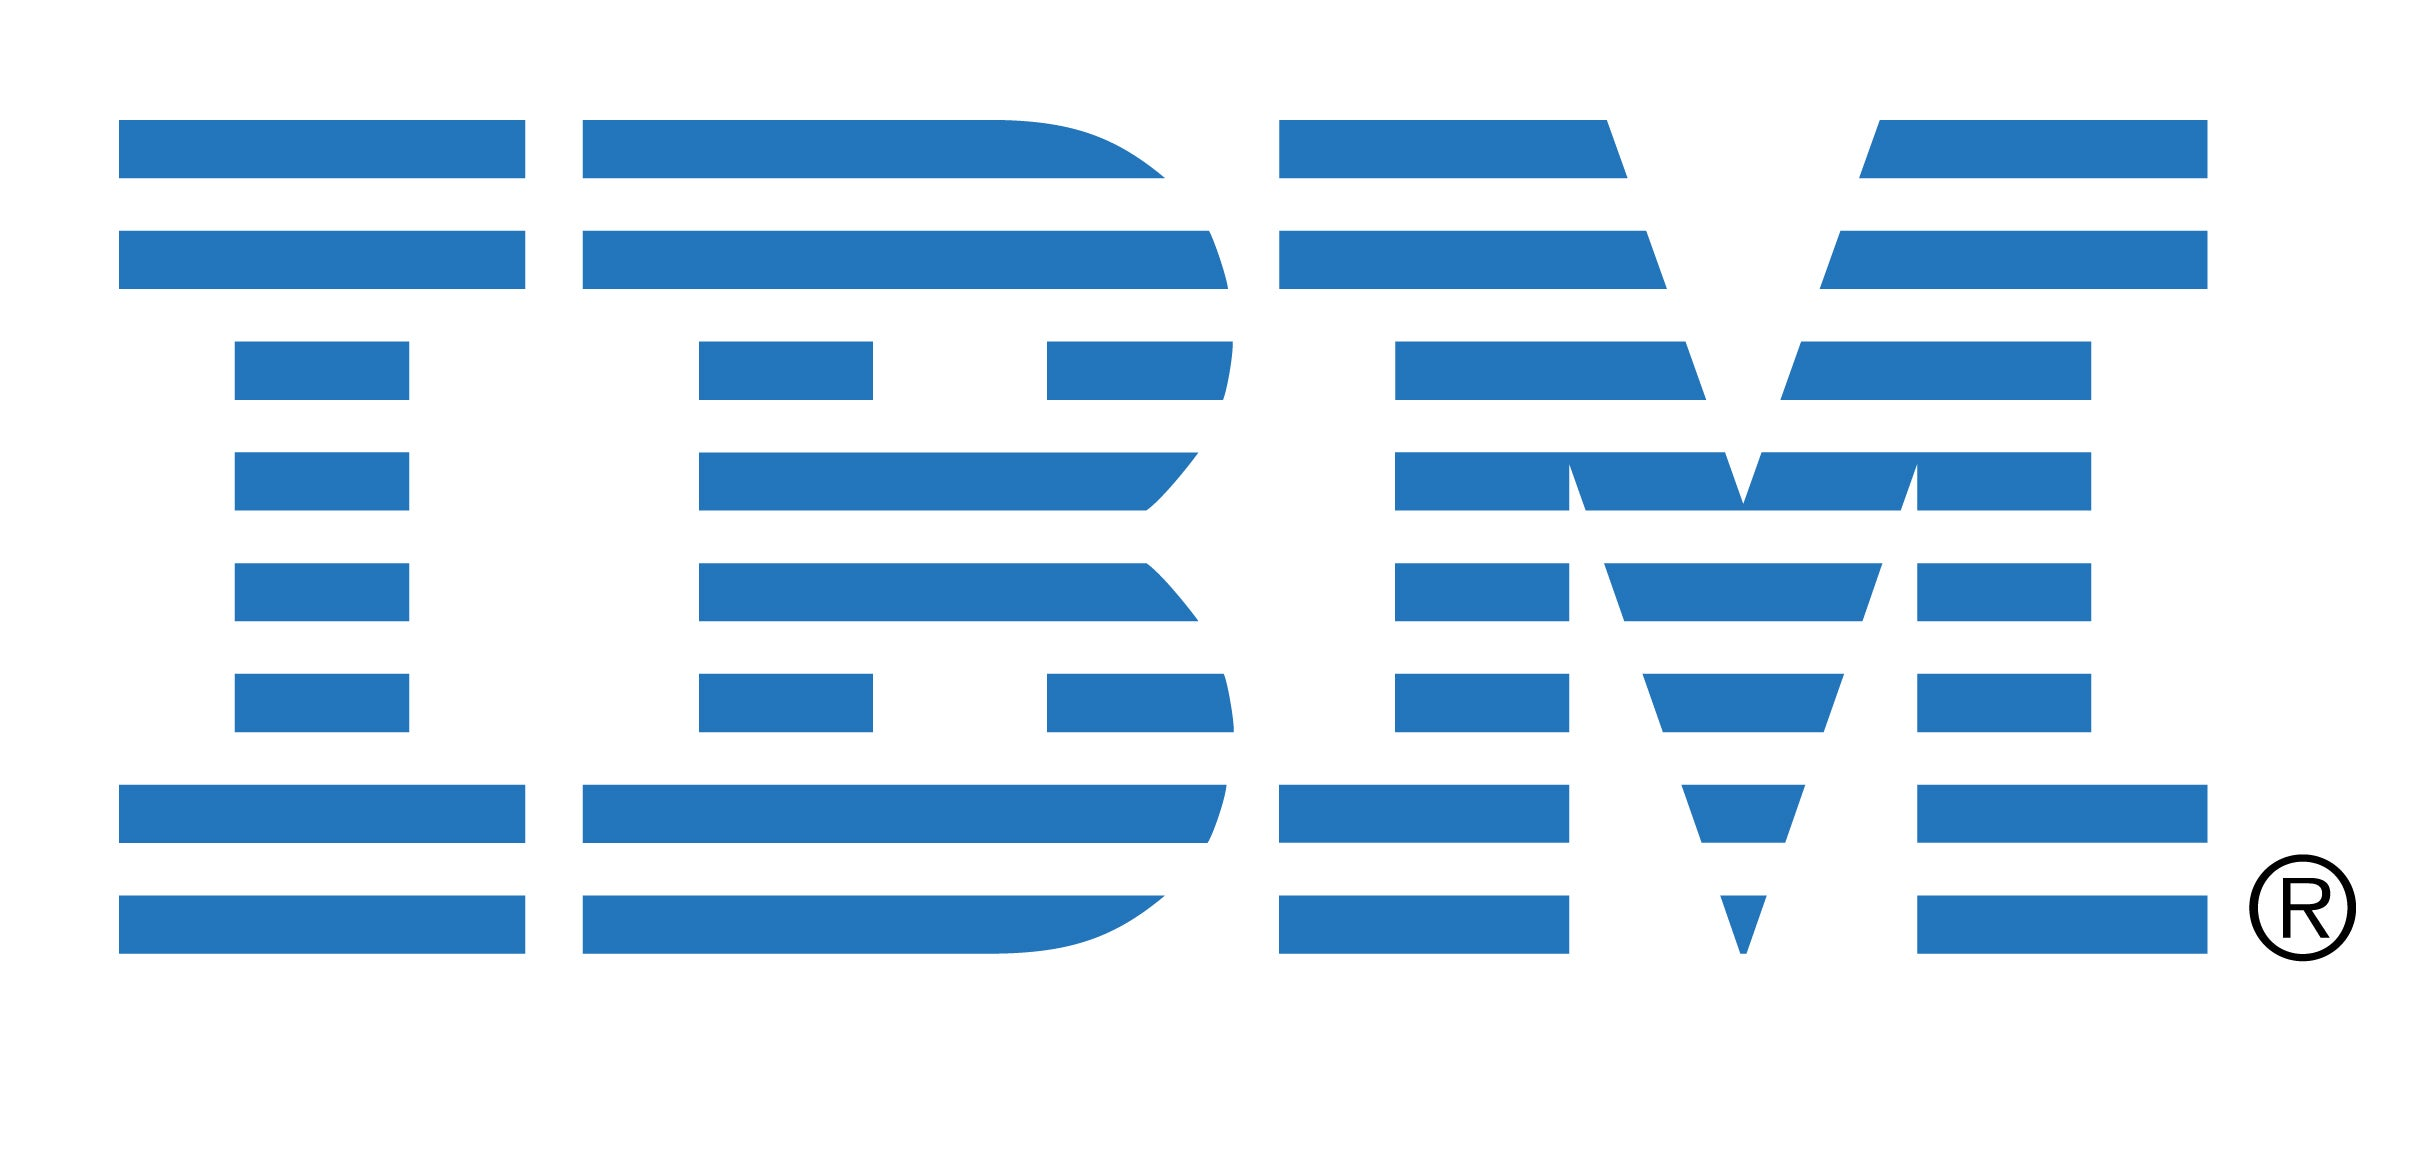 IBM's classic logo in blue stripes on a white background.